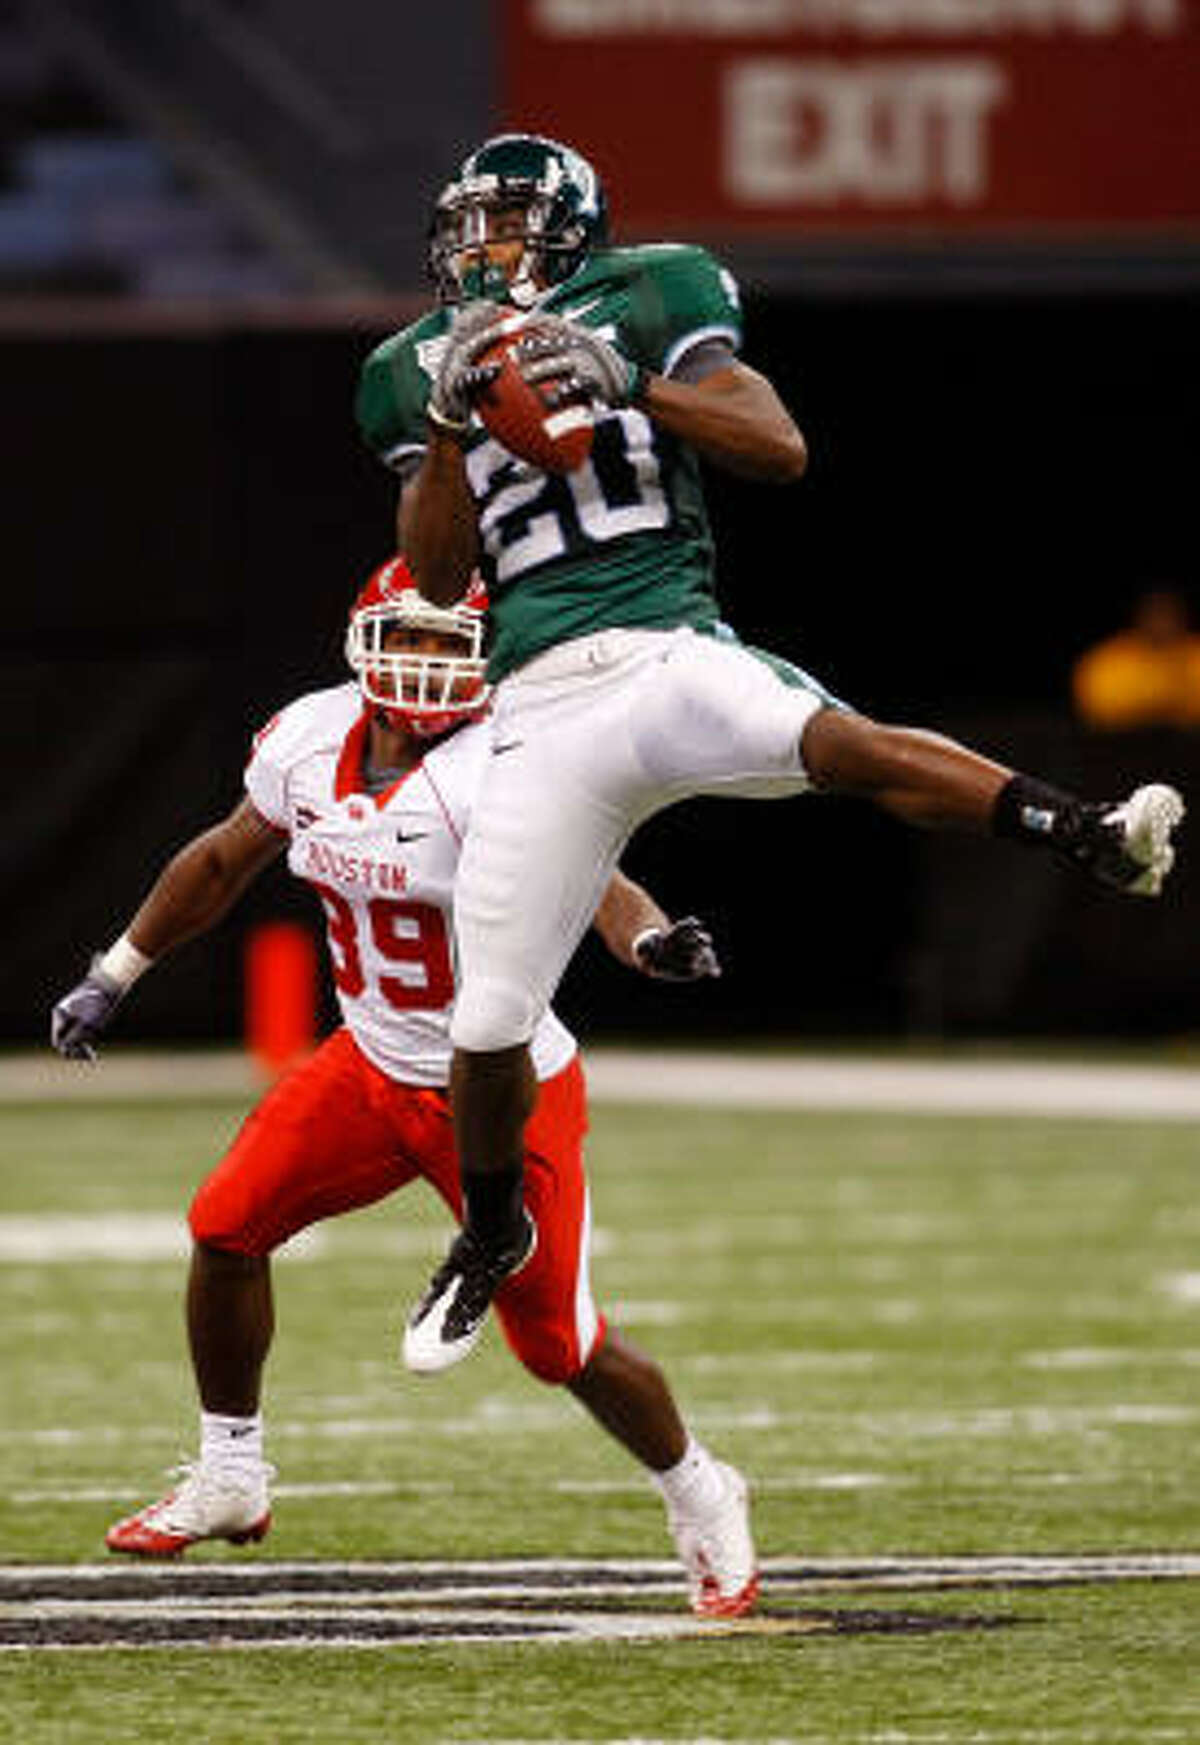 Tulane's Jeremy Williams catches a pass in front of UH's Roisean Haynes.